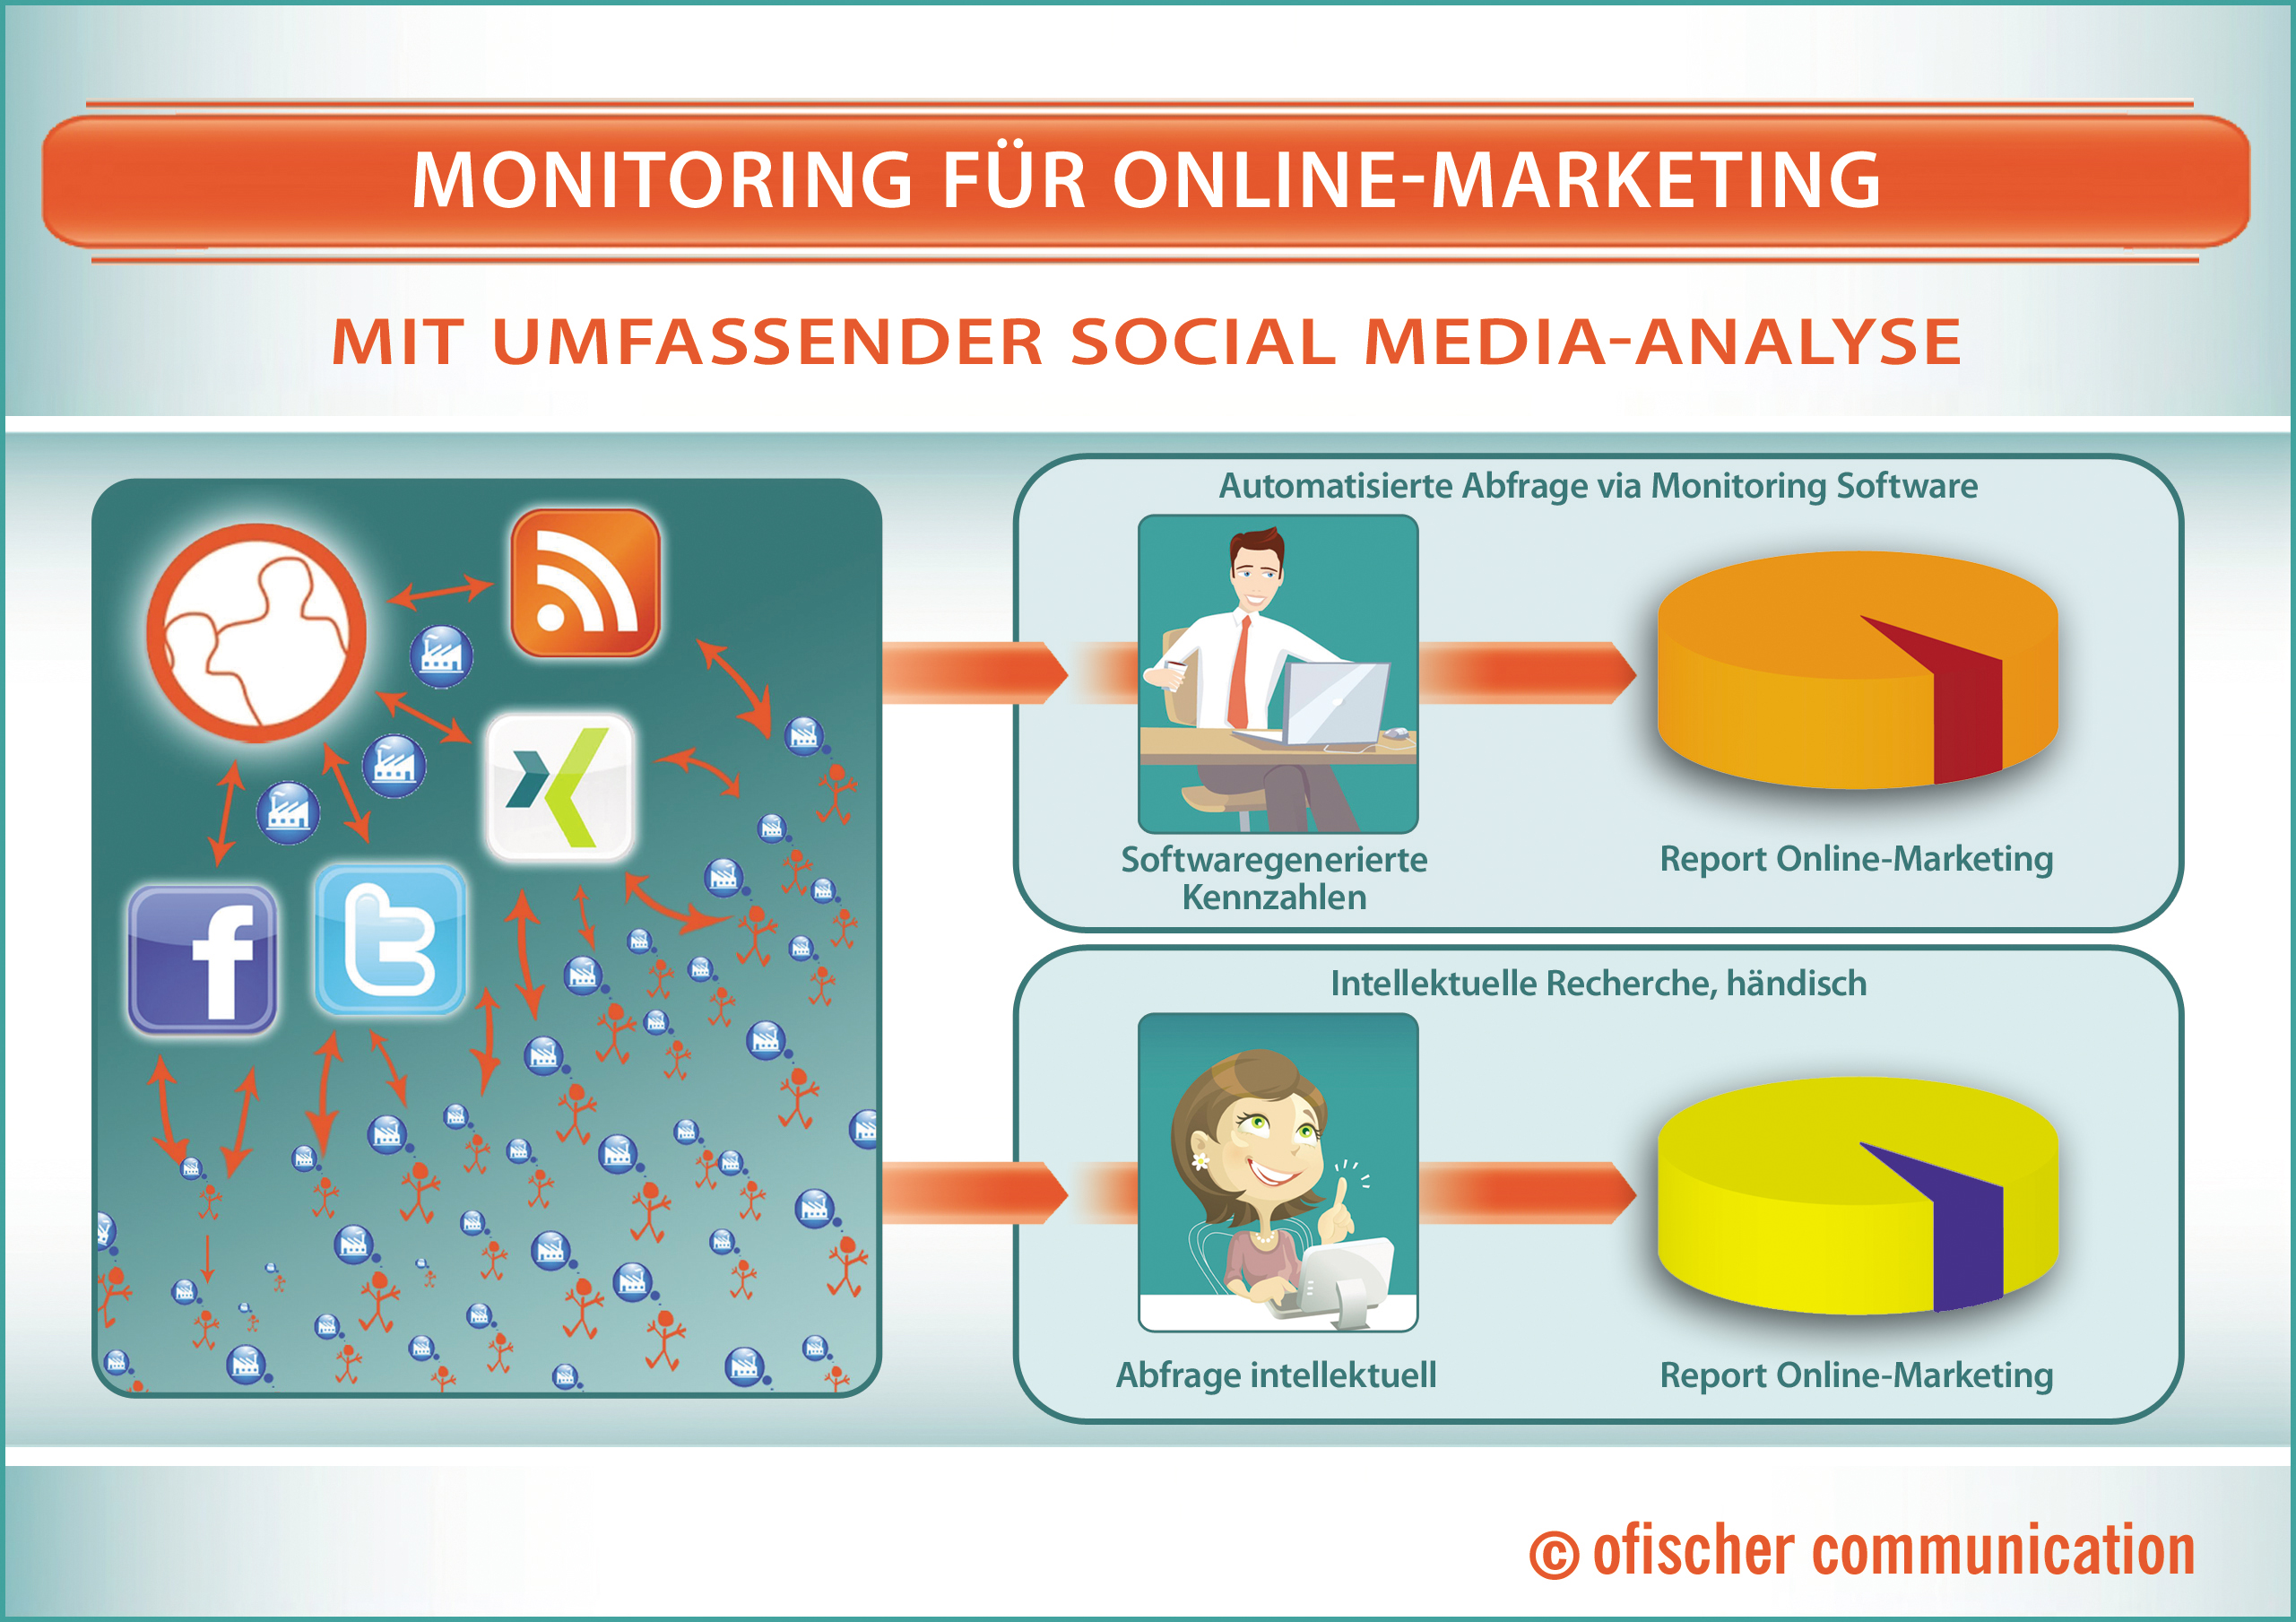 Monitoring für Online-Marketing und Online-PR. Mit umfassender Social Media-Analyse.